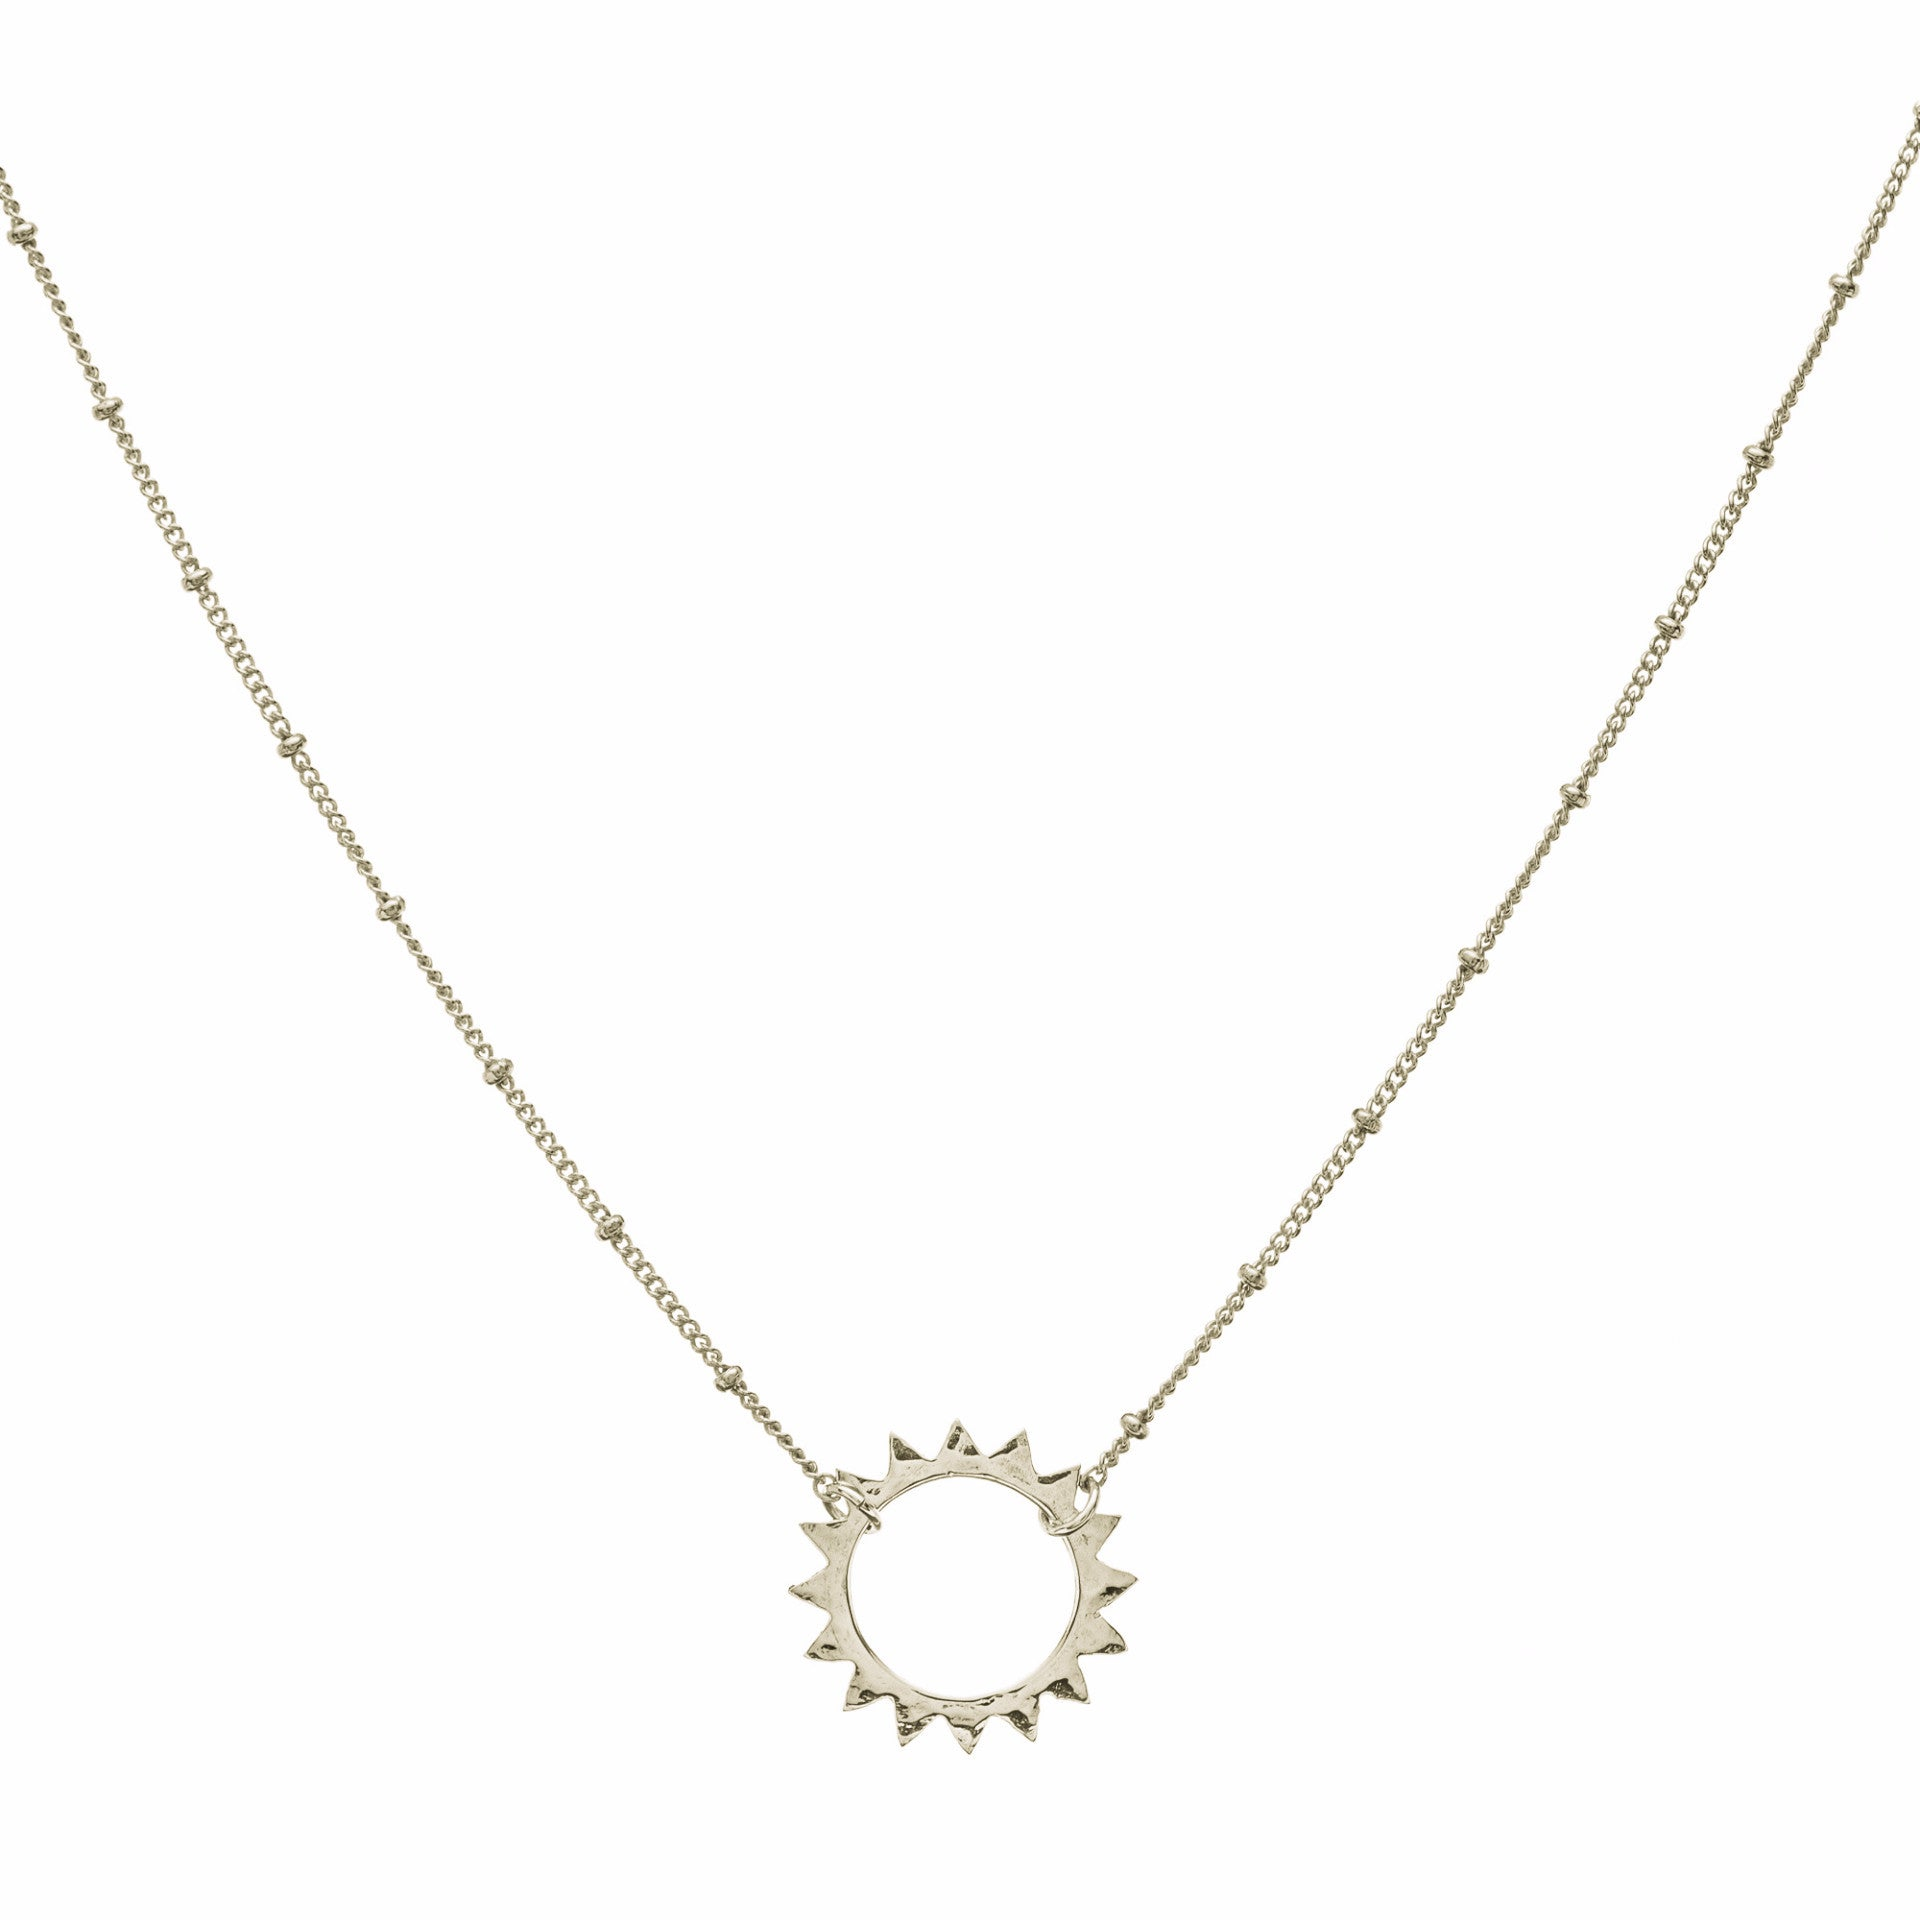 L Sun pendant & Sivan Chain Necklace